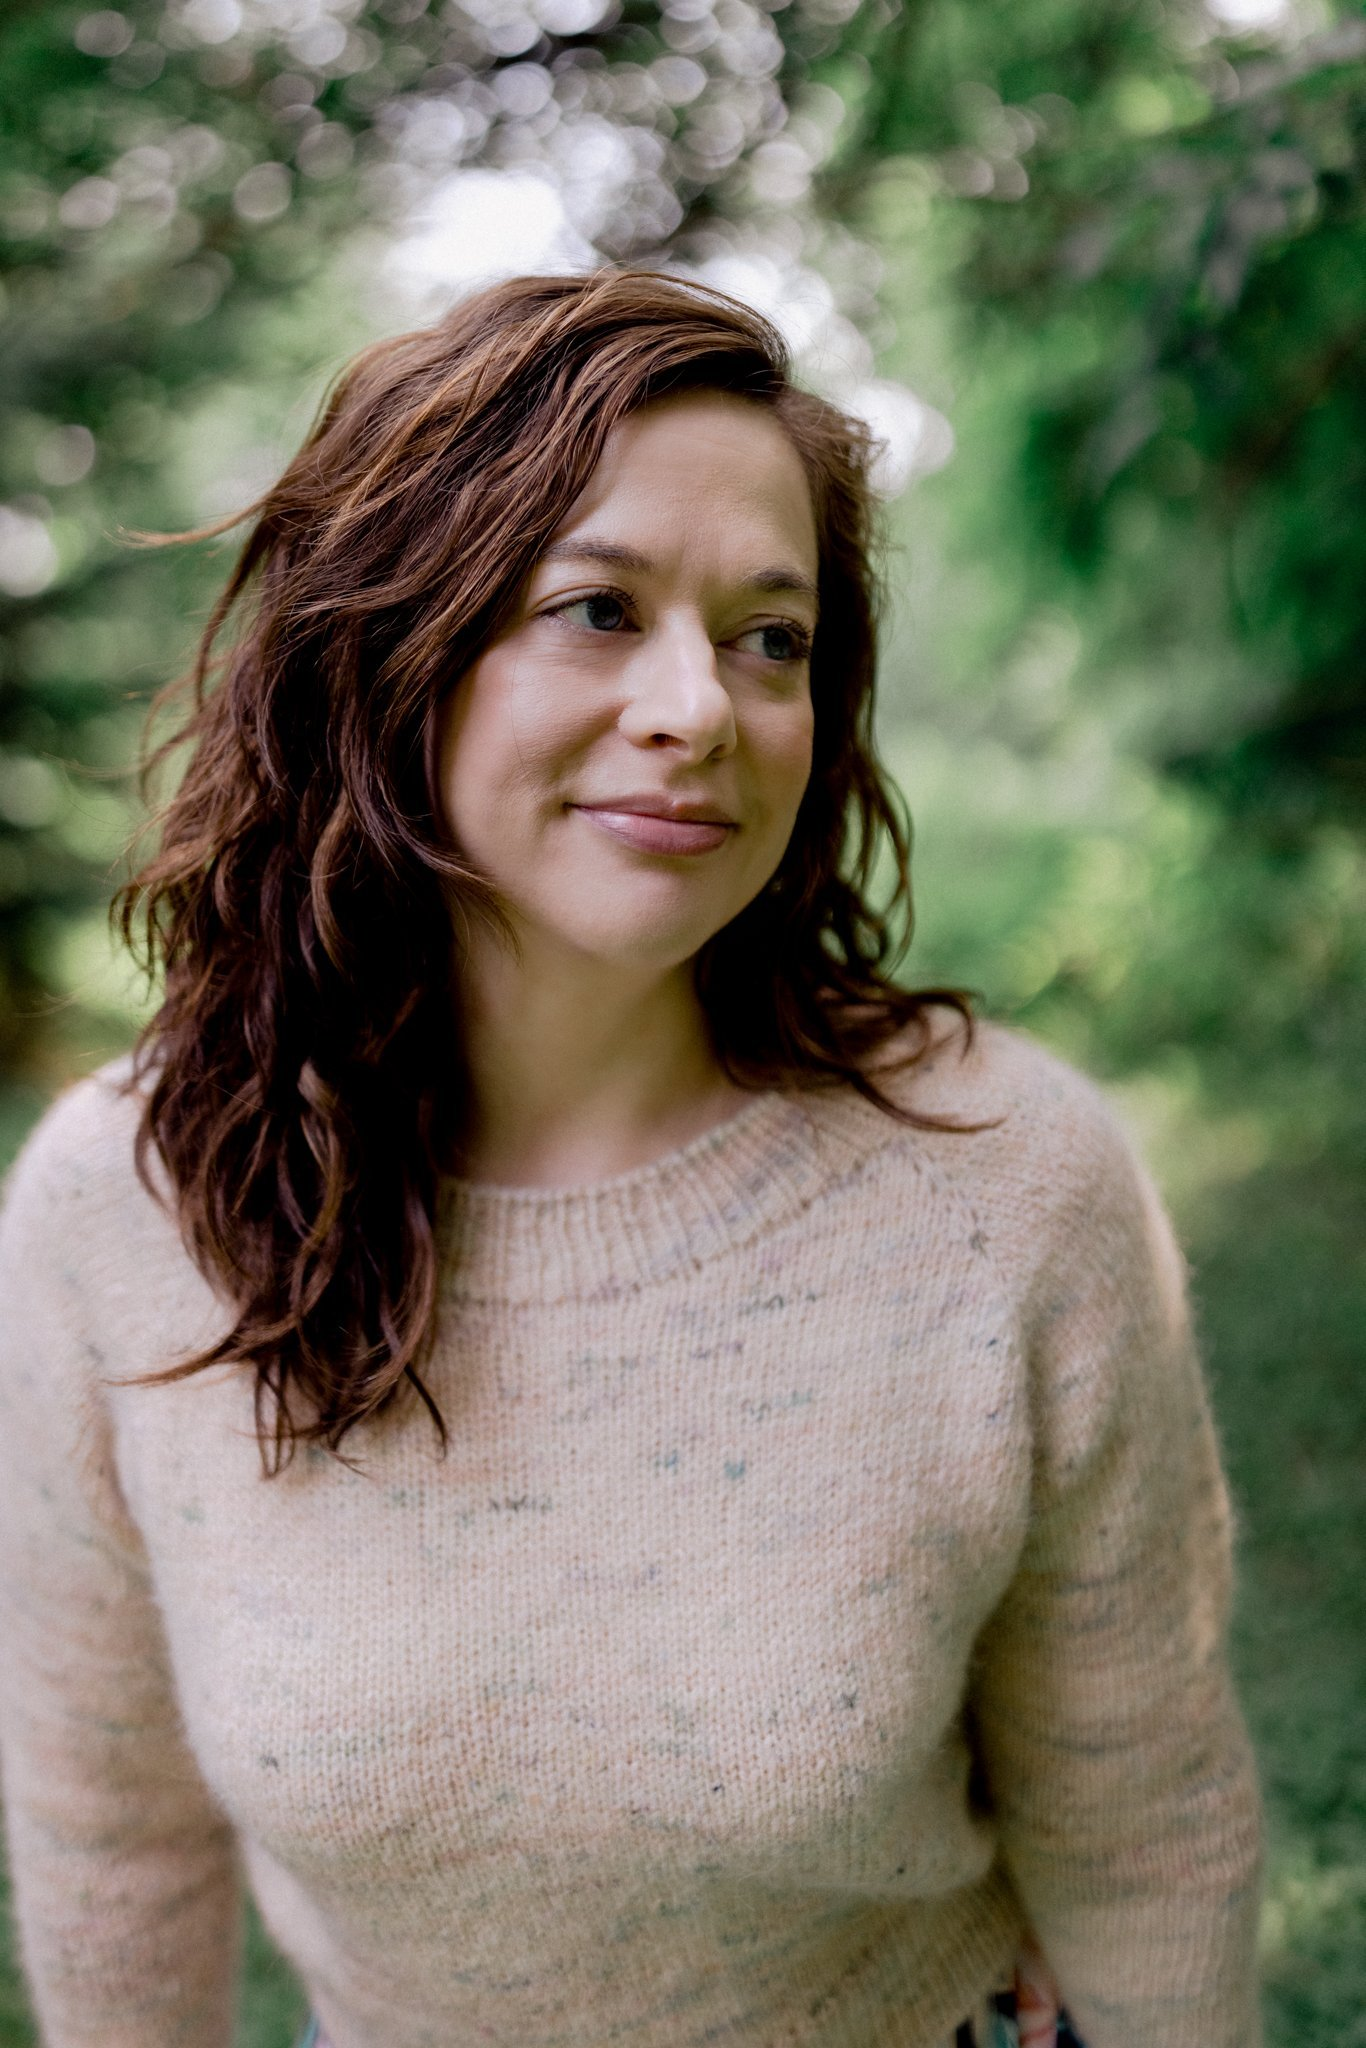 A woman in her mid-thirties stands amongst green trees wearing a handknit soft pink sweater. She softly smiles and gazes off to the side.